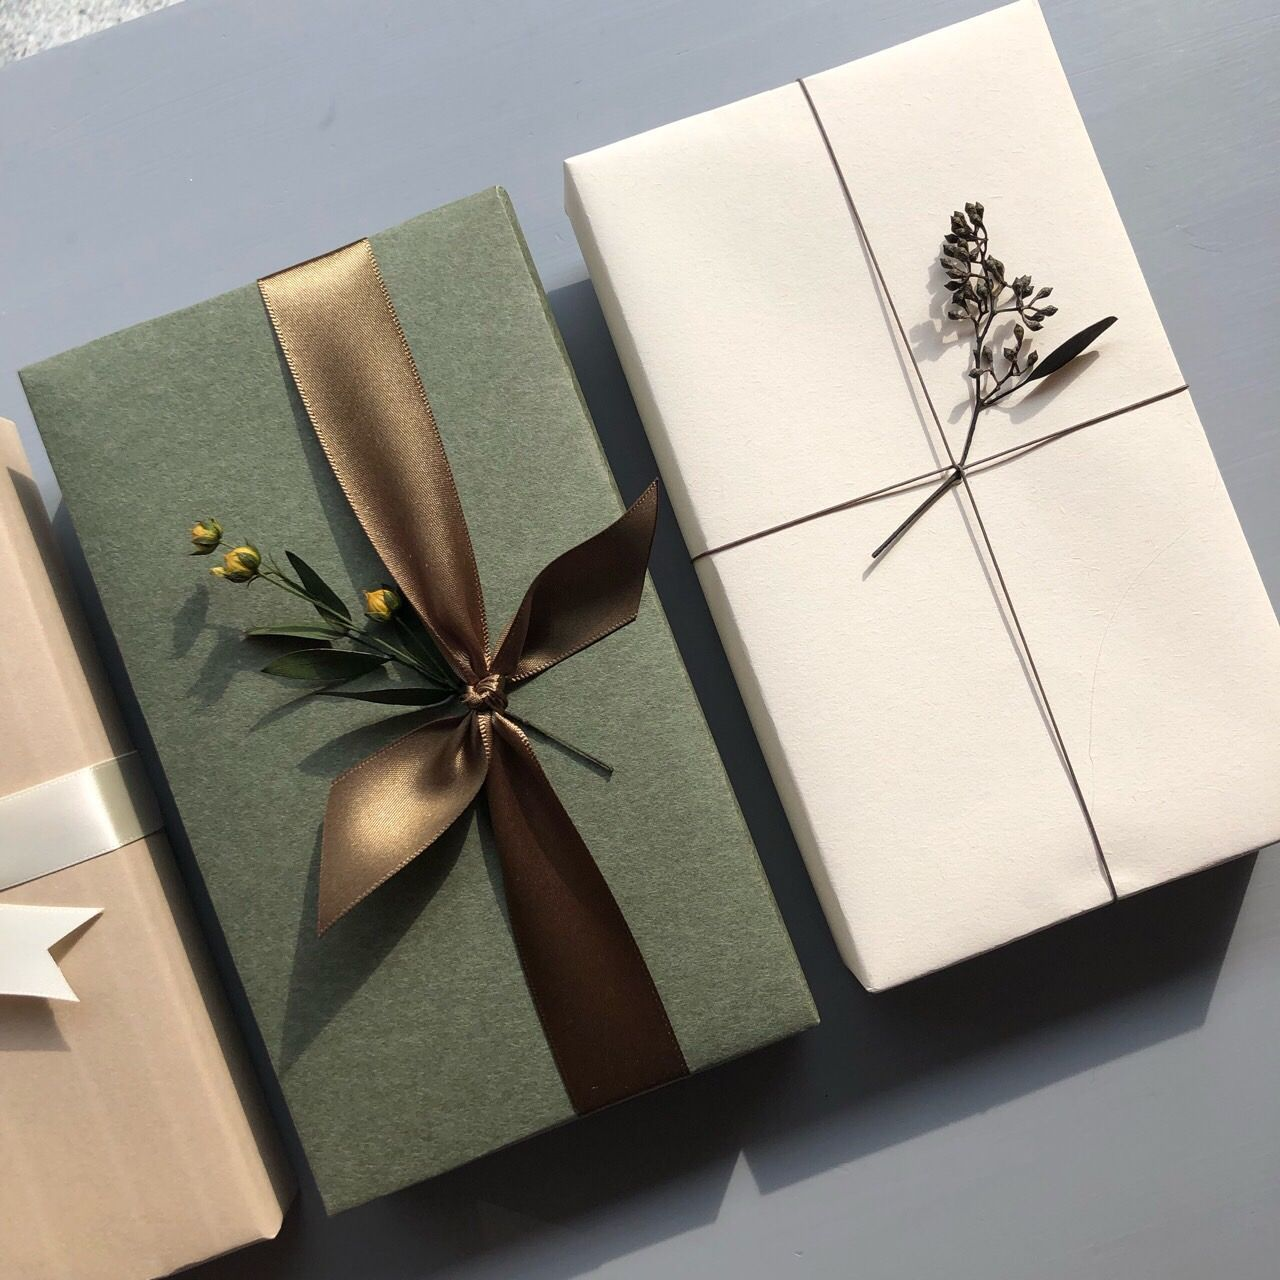 Minimalist Christmas Wrapping With Plants